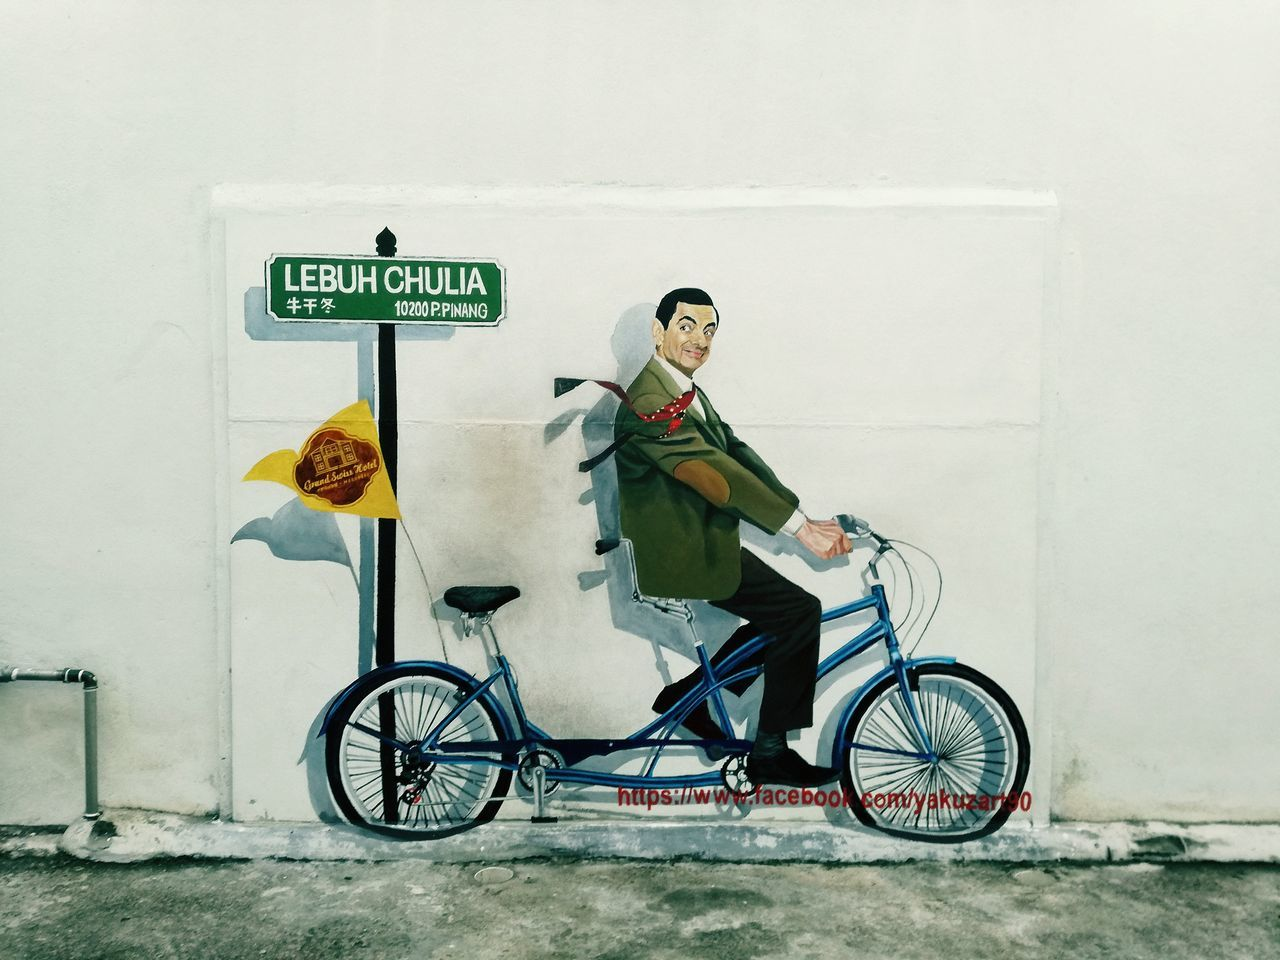 bicycle, transportation, mode of transport, full length, day, real people, outdoors, one person, road sign, architecture, people